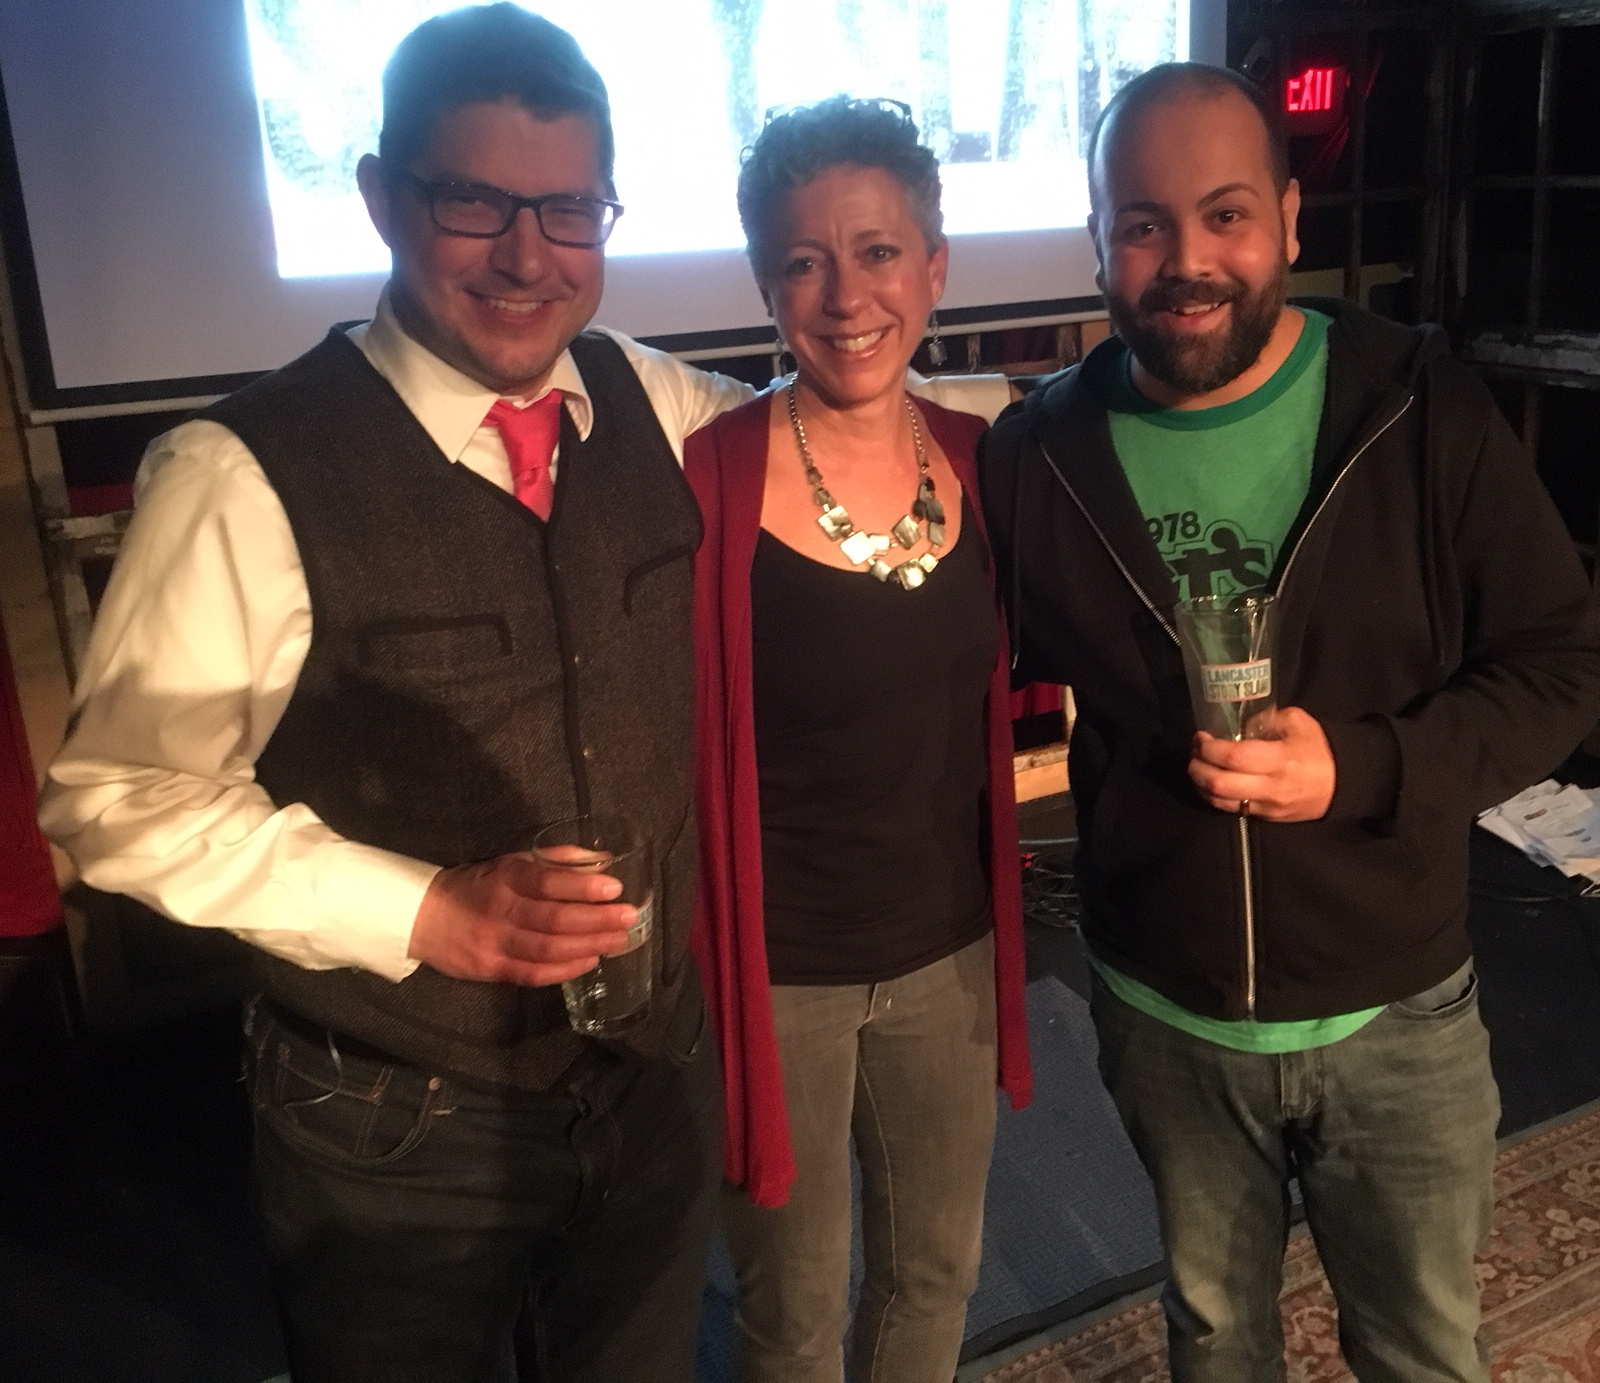 Marcus Grimm, emcee Melissa Snavely and Christian Carrion celebrate!